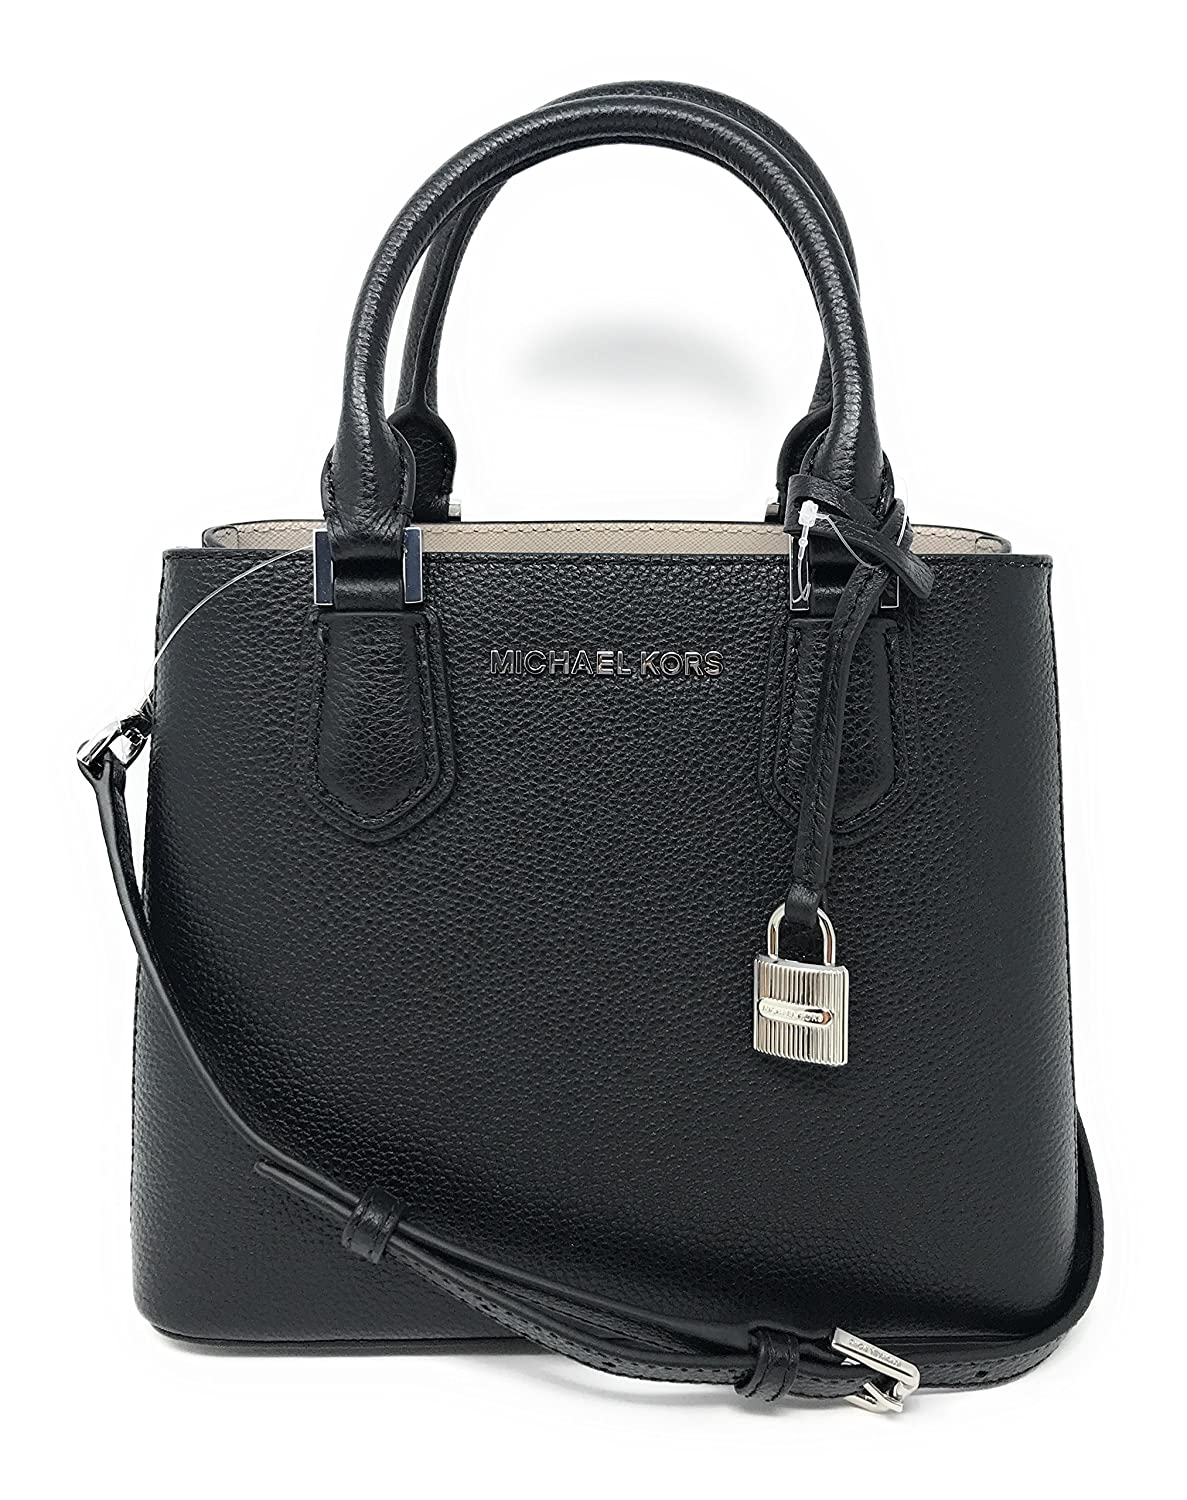 bb760589d5bb Amazon.com: Michael Kors Adele MD Leather Messenger Bag in Black/Cement:  Clothing